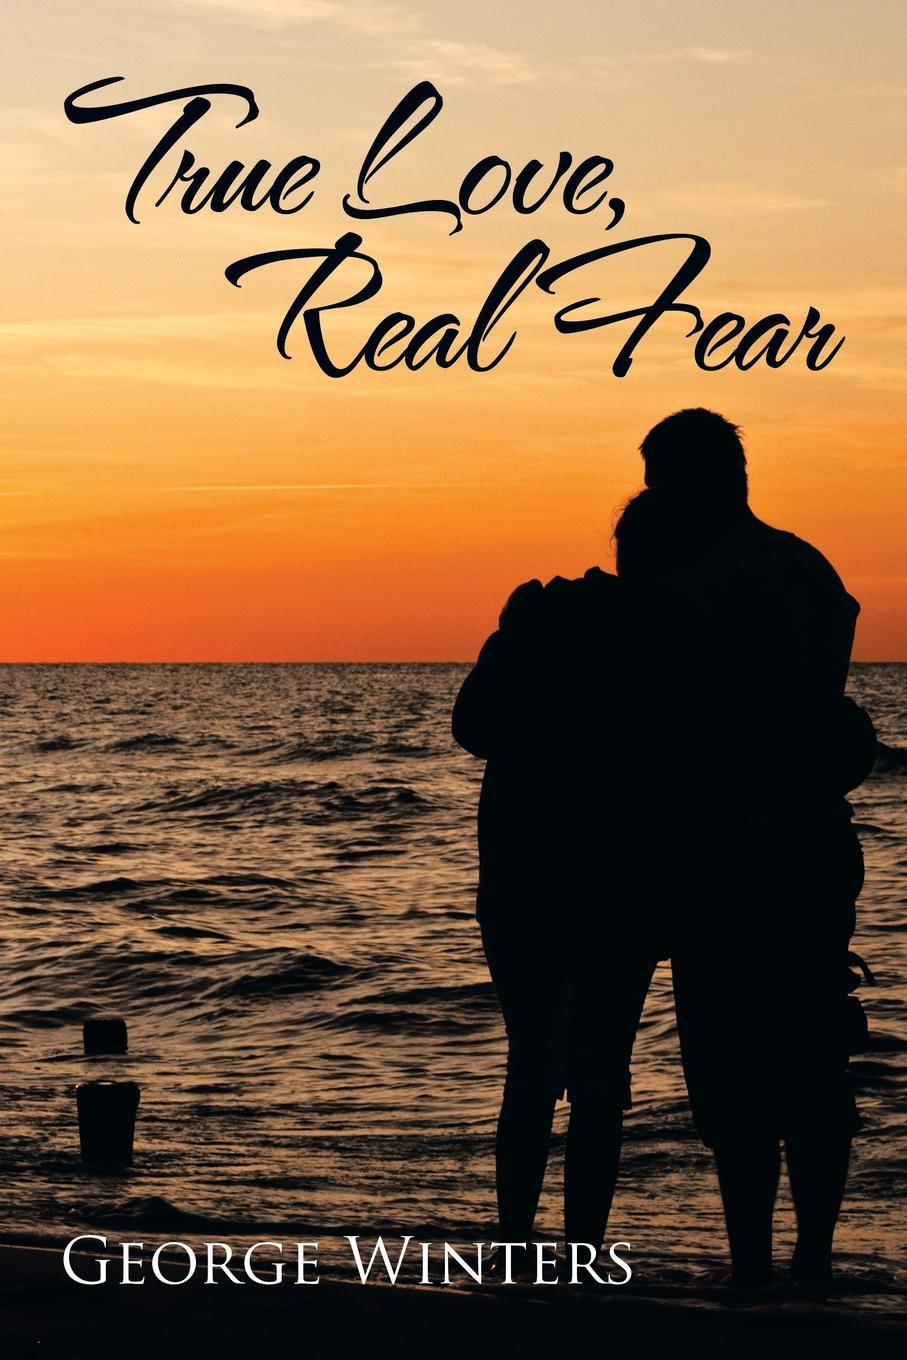 George Winters True Love, Real Fear terence kuch love fear sofa